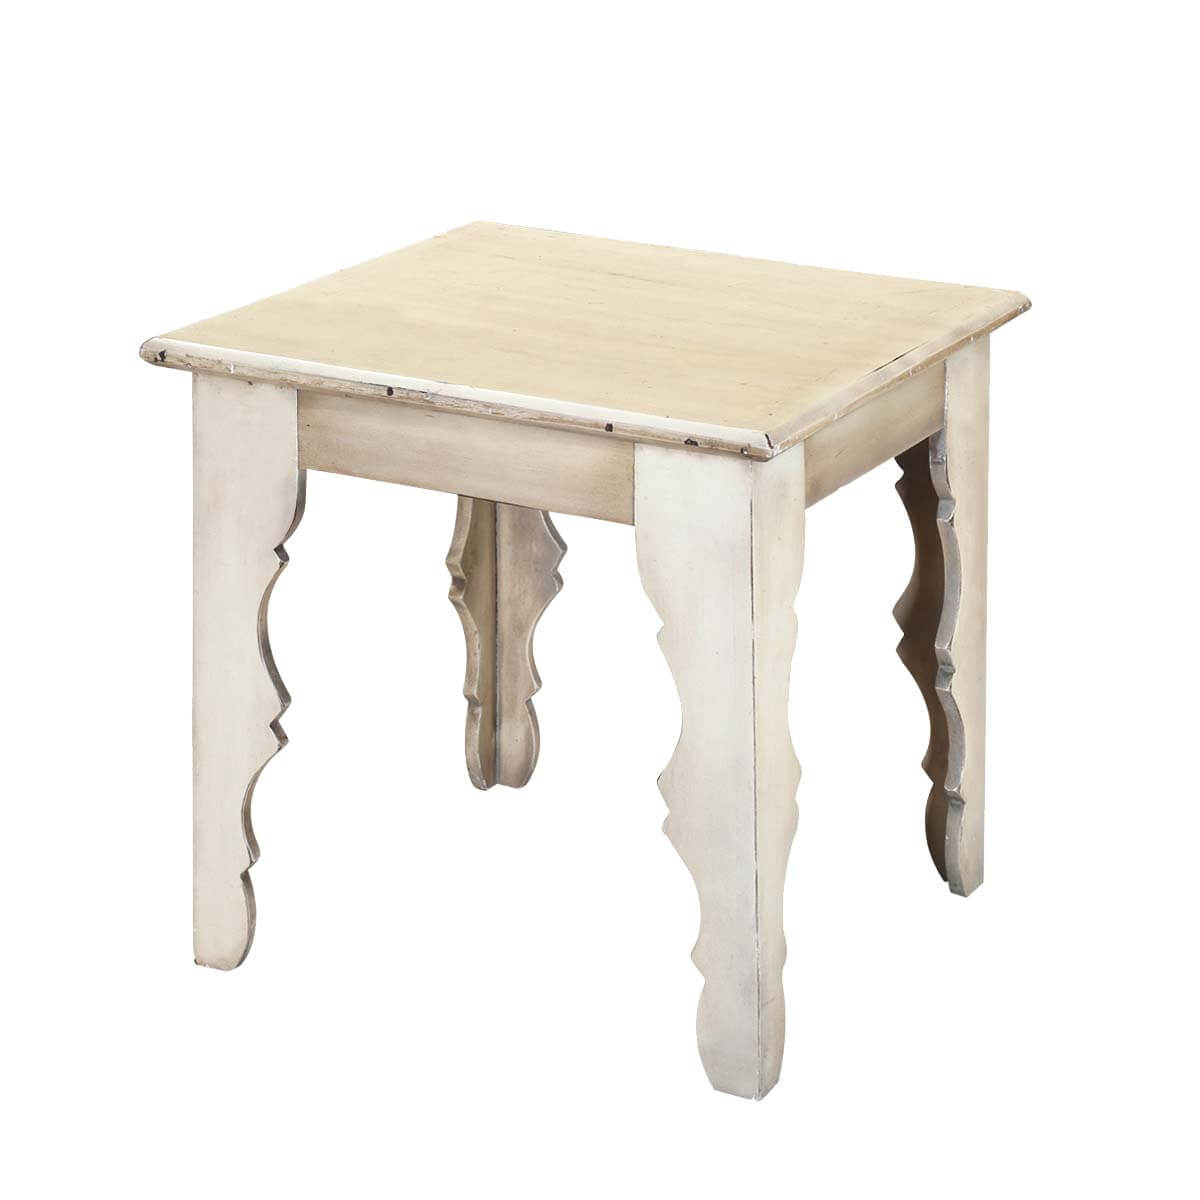 winter white rustic mango wood square accent end table high top height teton village west elm emmerson expandable trestle colorful tables furniture chests and consoles big bedside